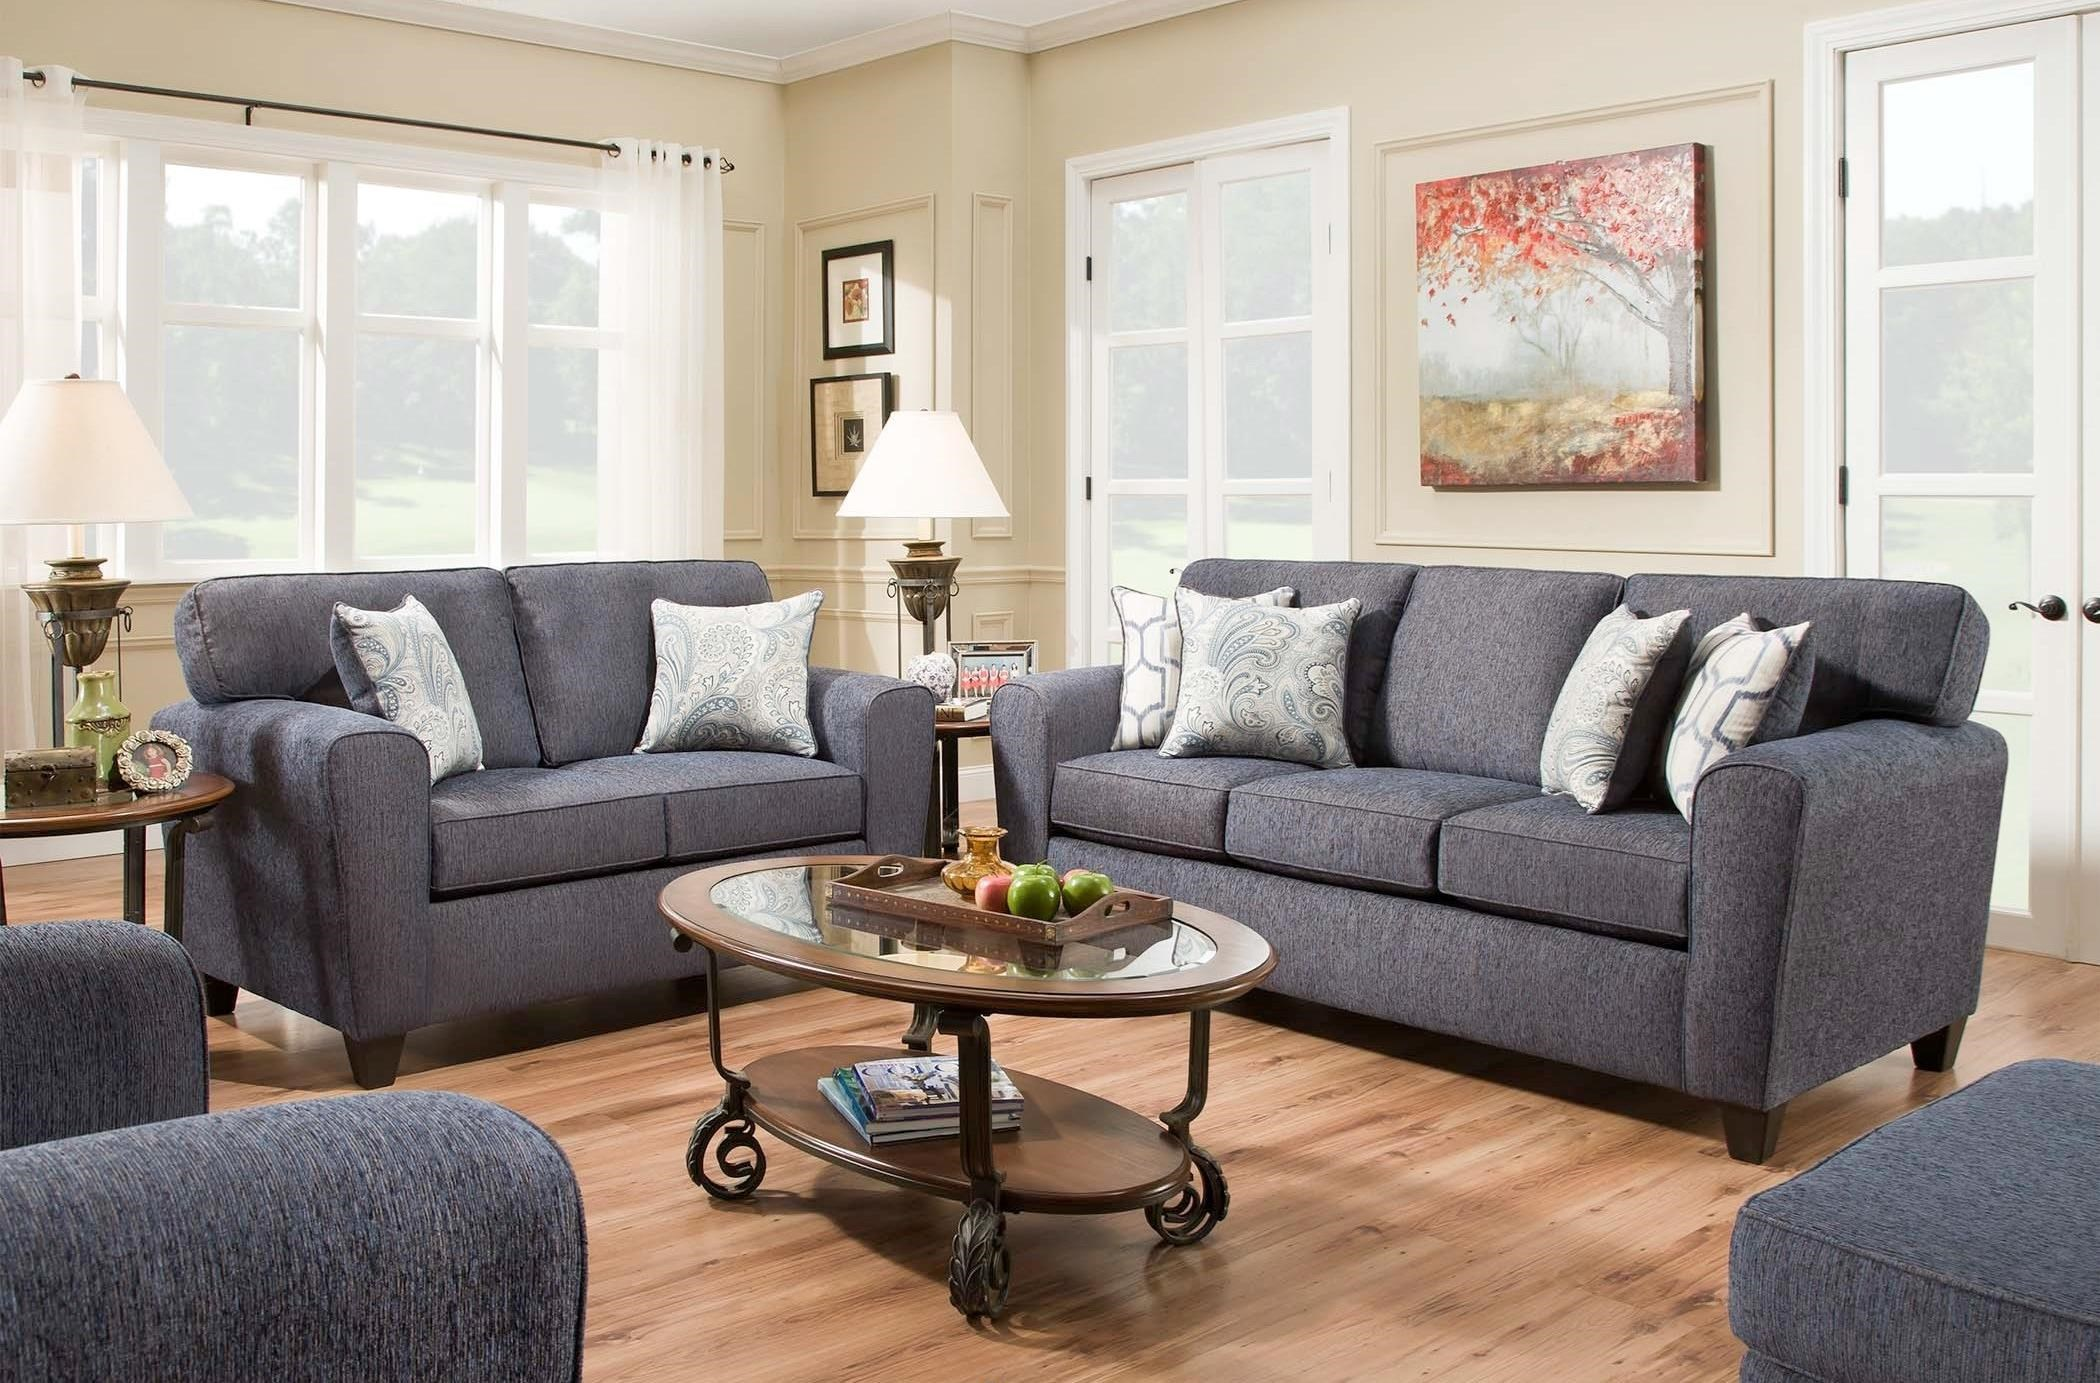 3100 Living Room Group by Peak Living at Prime Brothers Furniture